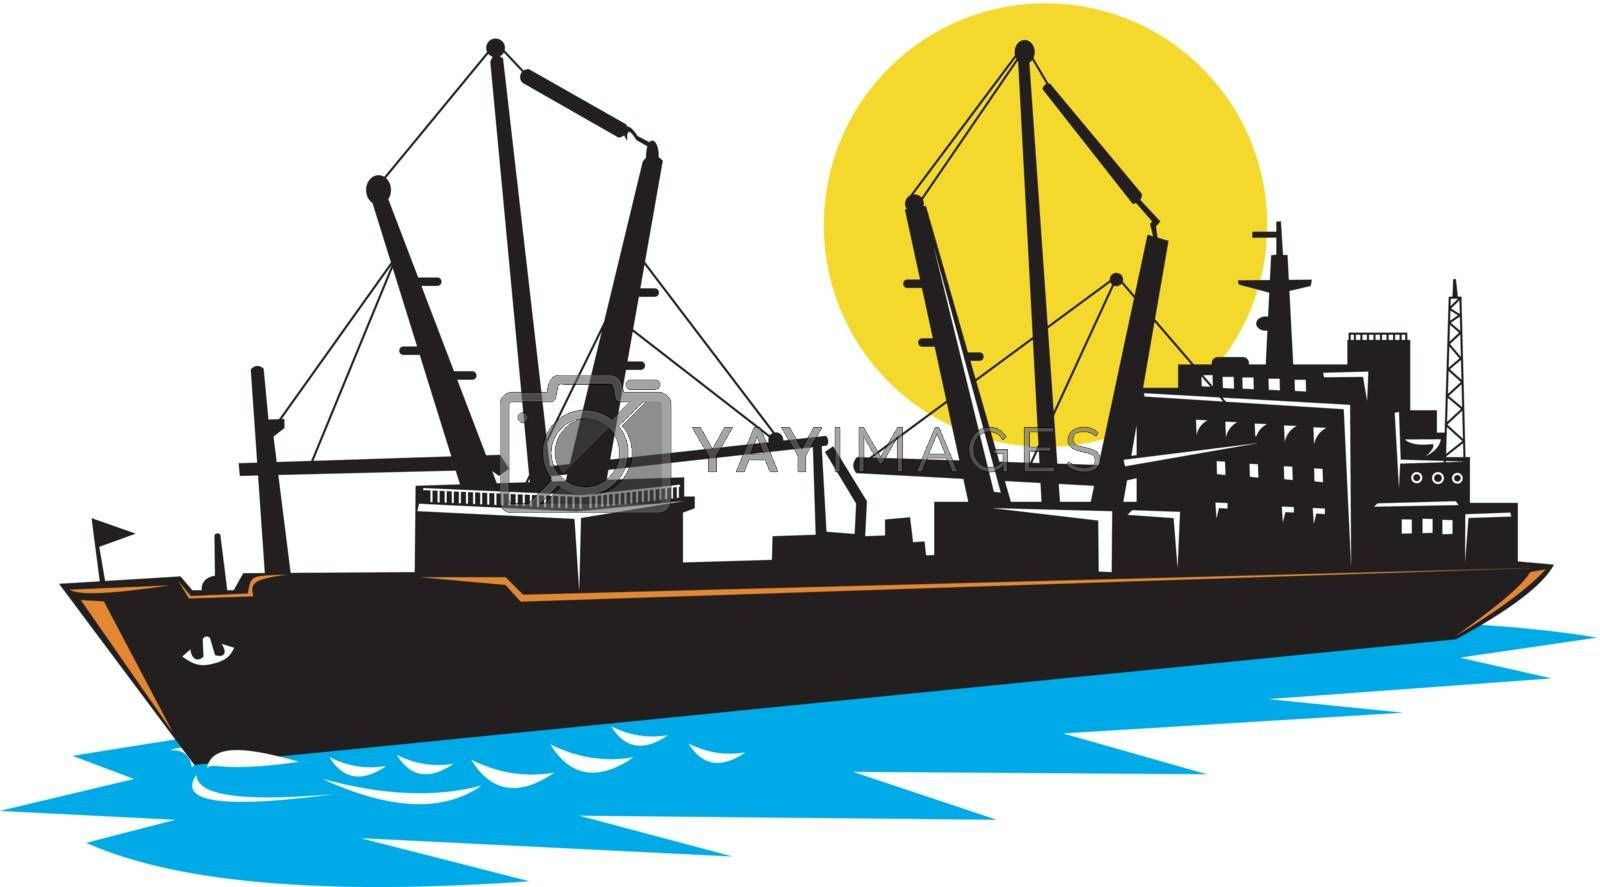 Illustration of a cargo ship at sea on isolated white background.